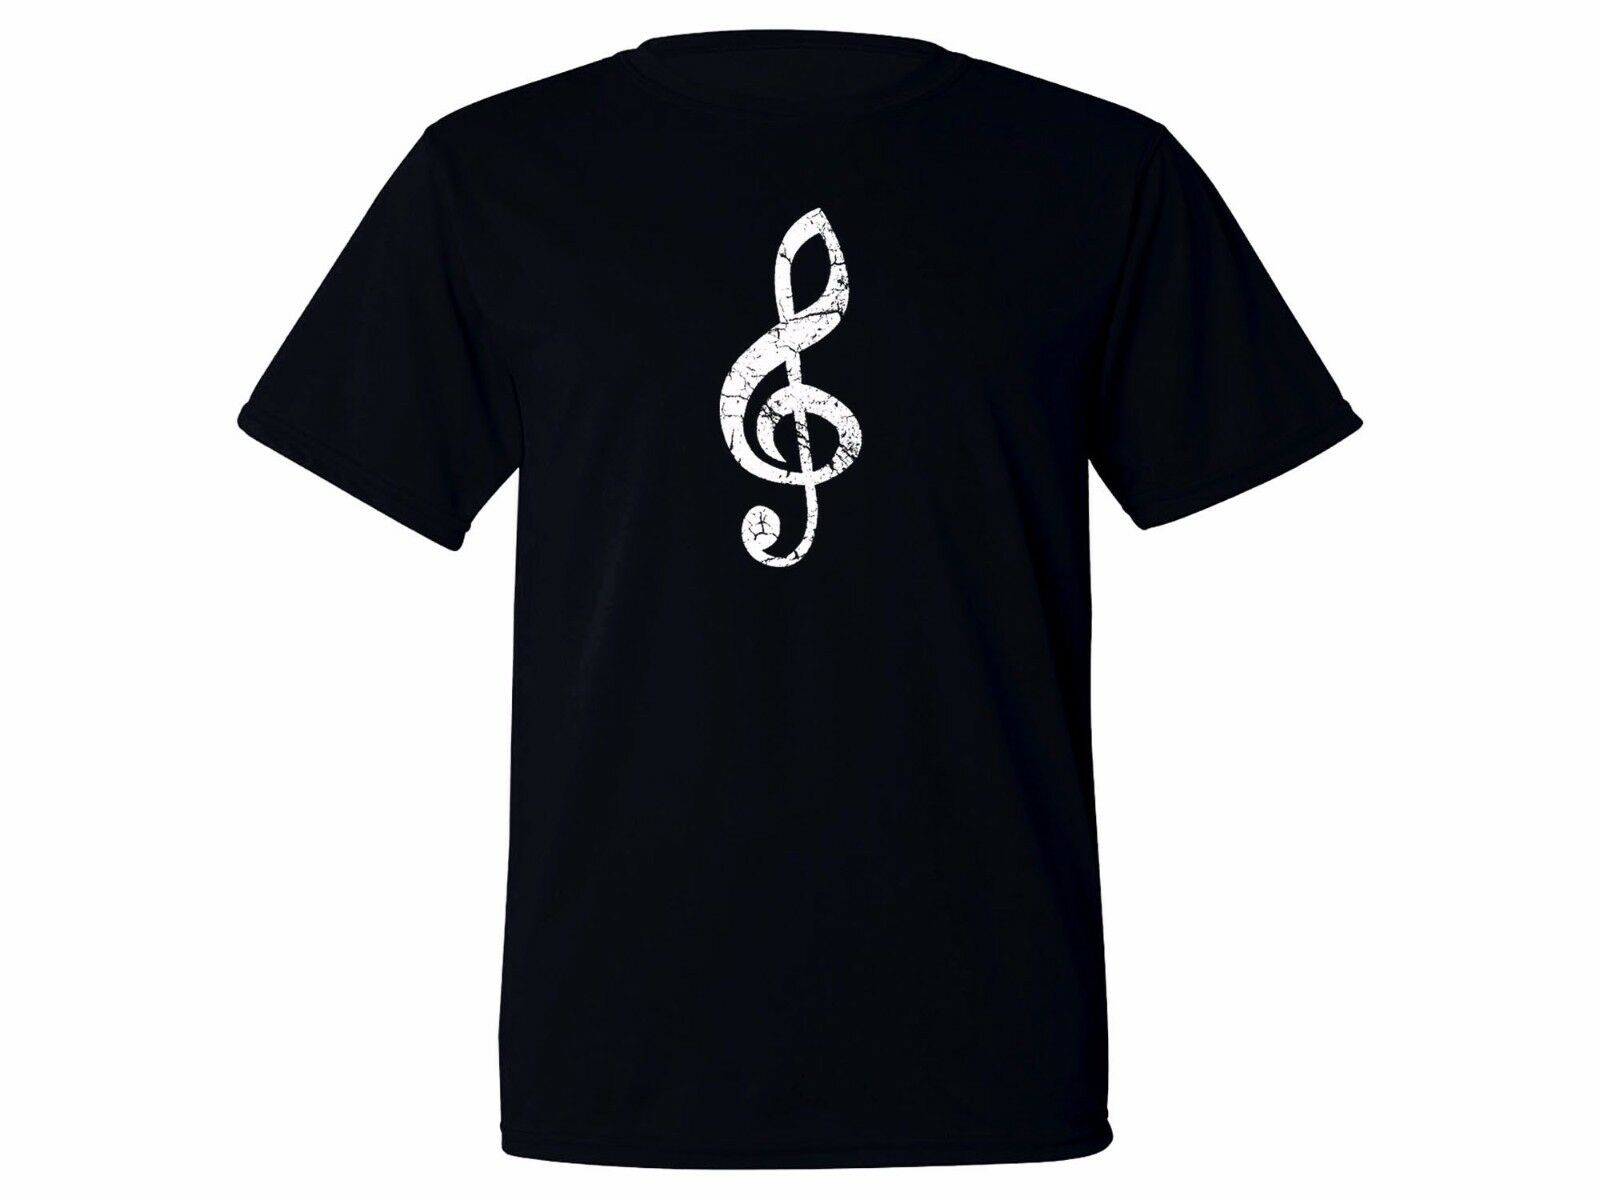 Music Player Gift Treble Clef Moisture Wicking Fabric Workout Black New T-shirt Mens image